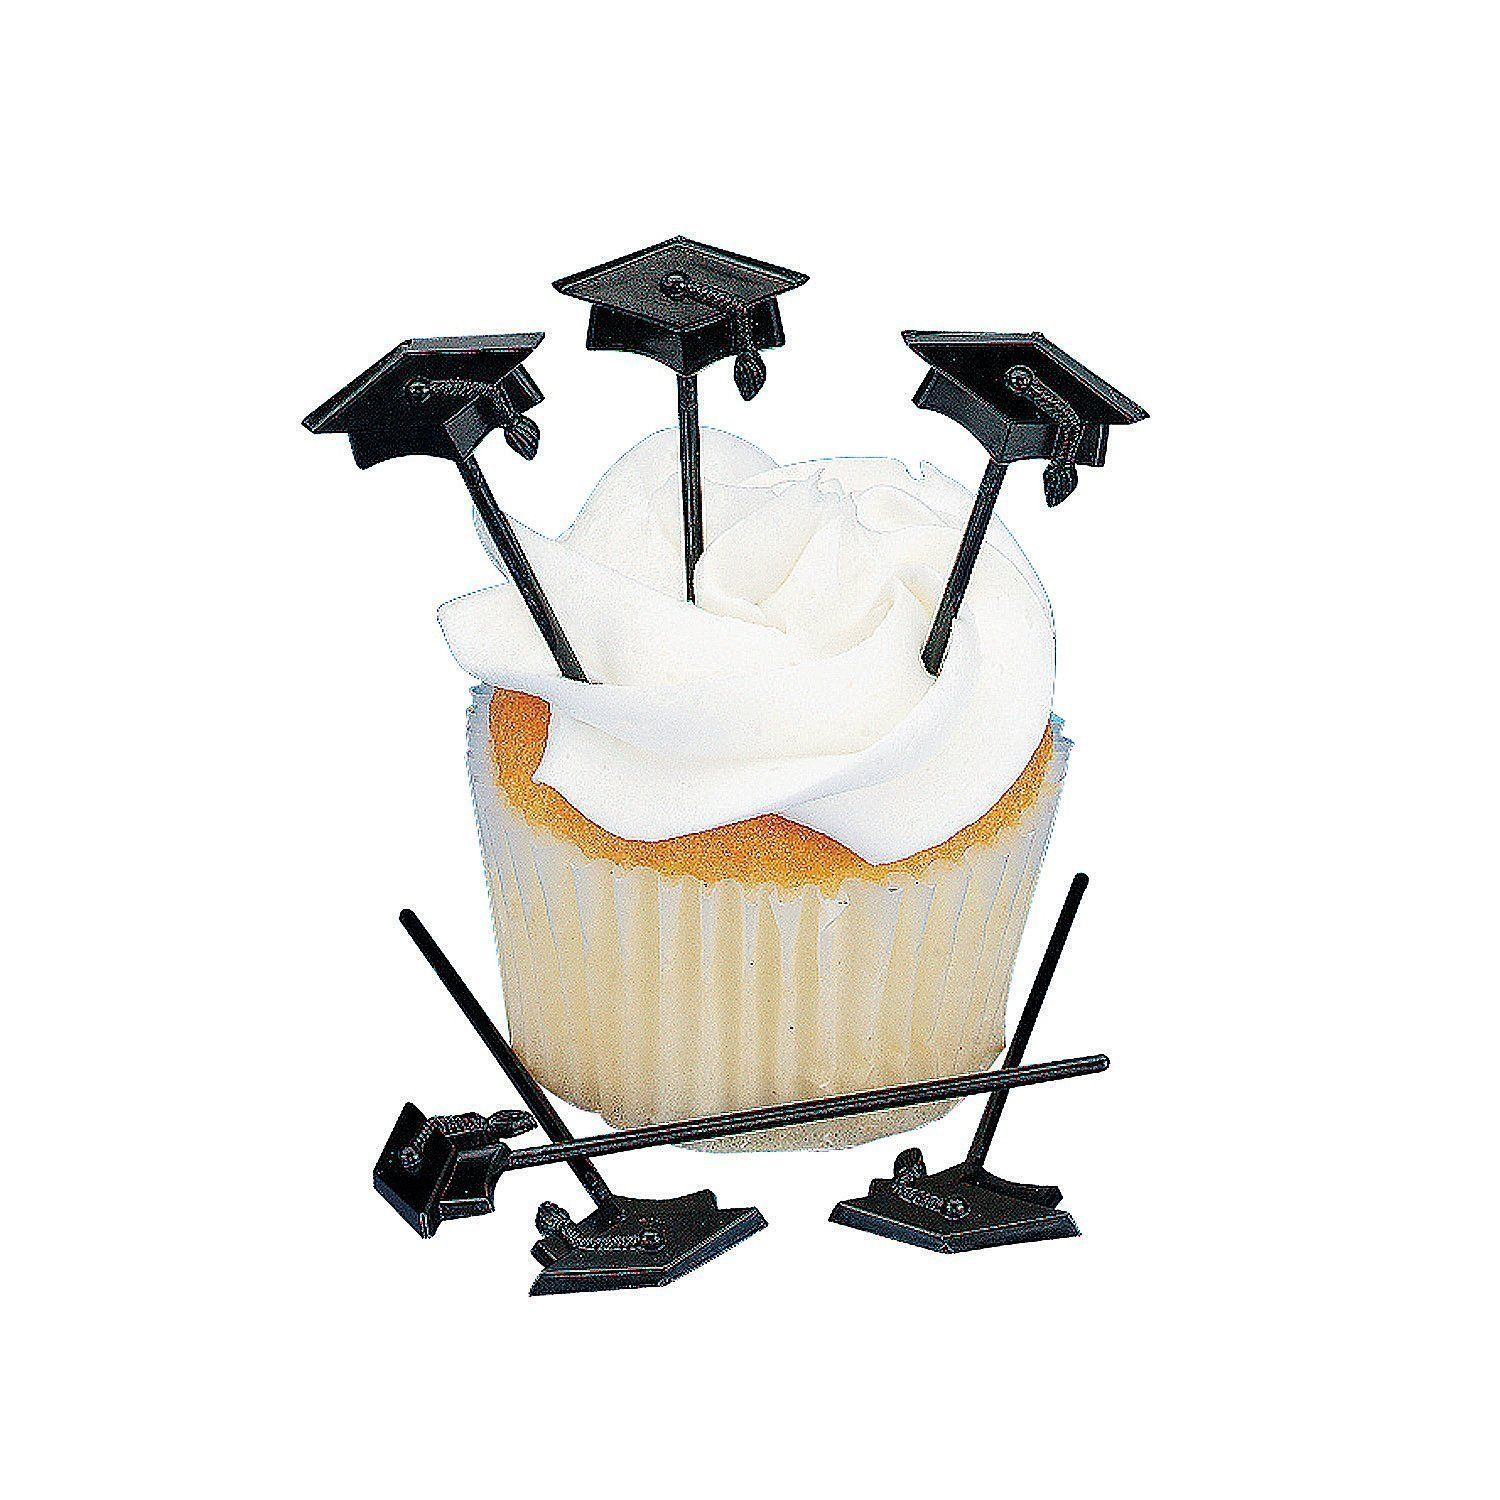 72 pc Graduation Cupcake or Appetizer Picks: Graduation Gift